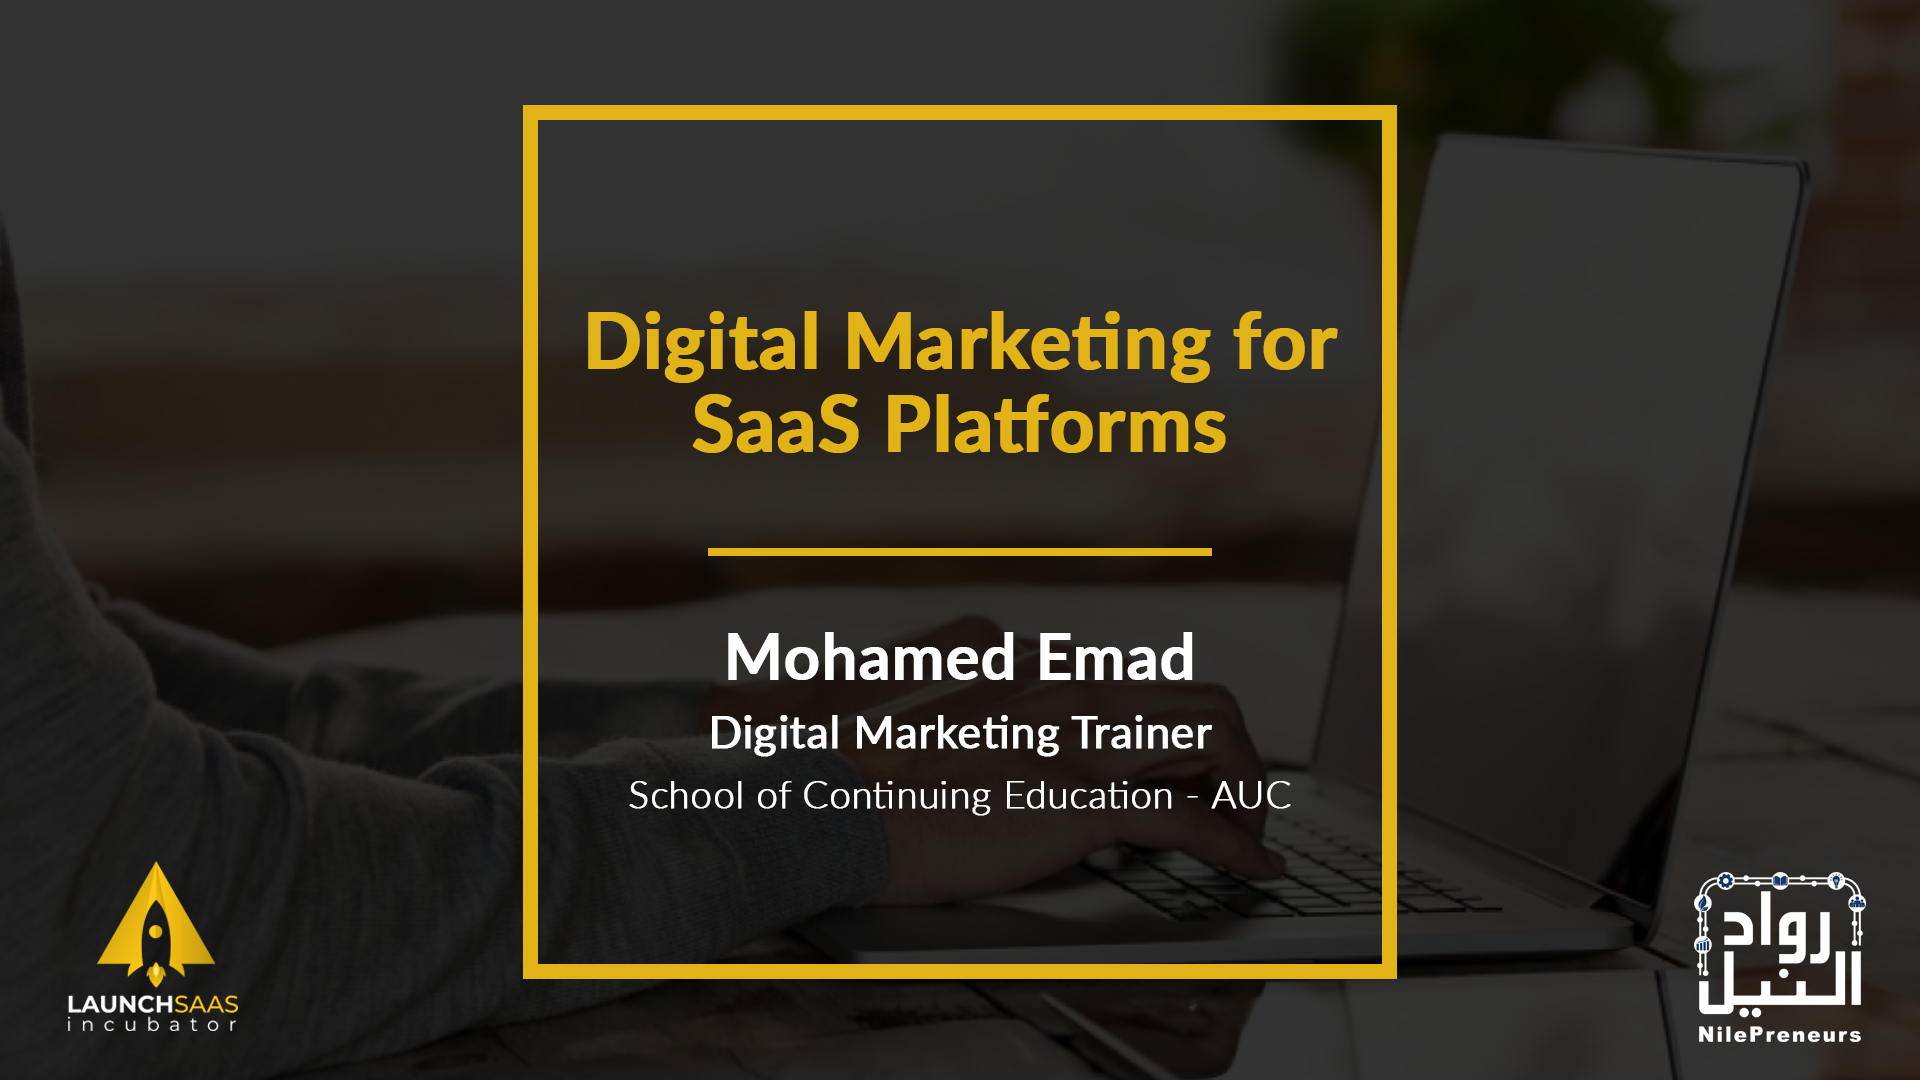 Digital Marketing for SaaS Platforms